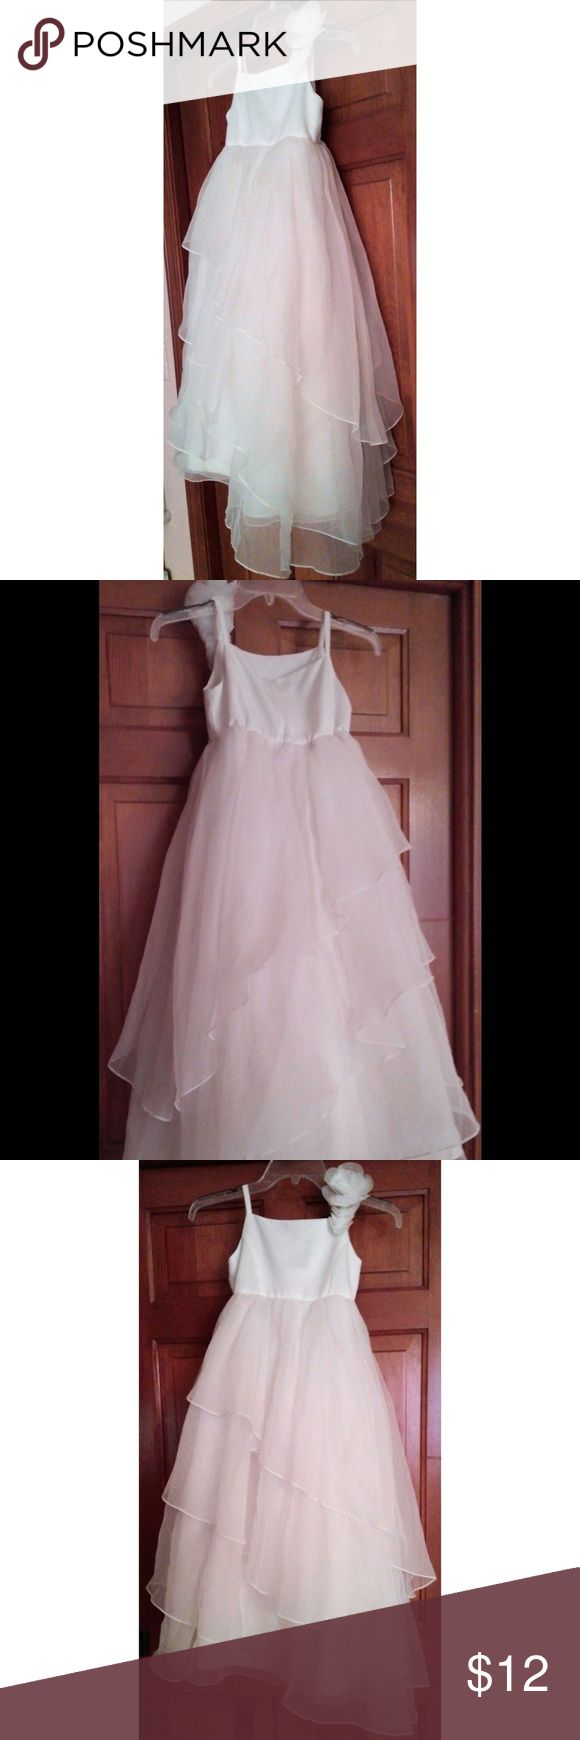 """David's Bridal Spaghetti-Strap Flower Girl Dress This satin and tulle flower girl dress features flower embellishments on one strap, and a voluminous, layered skirt.   The dress has a back zipper, and is fully lined.   Please note: There are 3 small holes located along the hem of the dress. One of the holes is shown in one of the pictures.   Color: soft white   The size is 6; approximate measurements: Length: 39"""" Bust: 11.5""""   The dress hangs slightly longer on one side.     Used; Good…"""